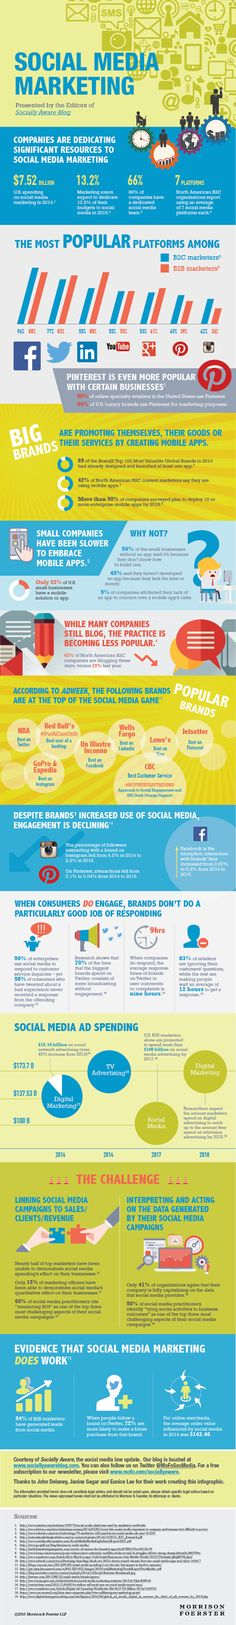 This awesome infographic highlights key social media marketing trends for both B2B and B2C companies.Put them to use!